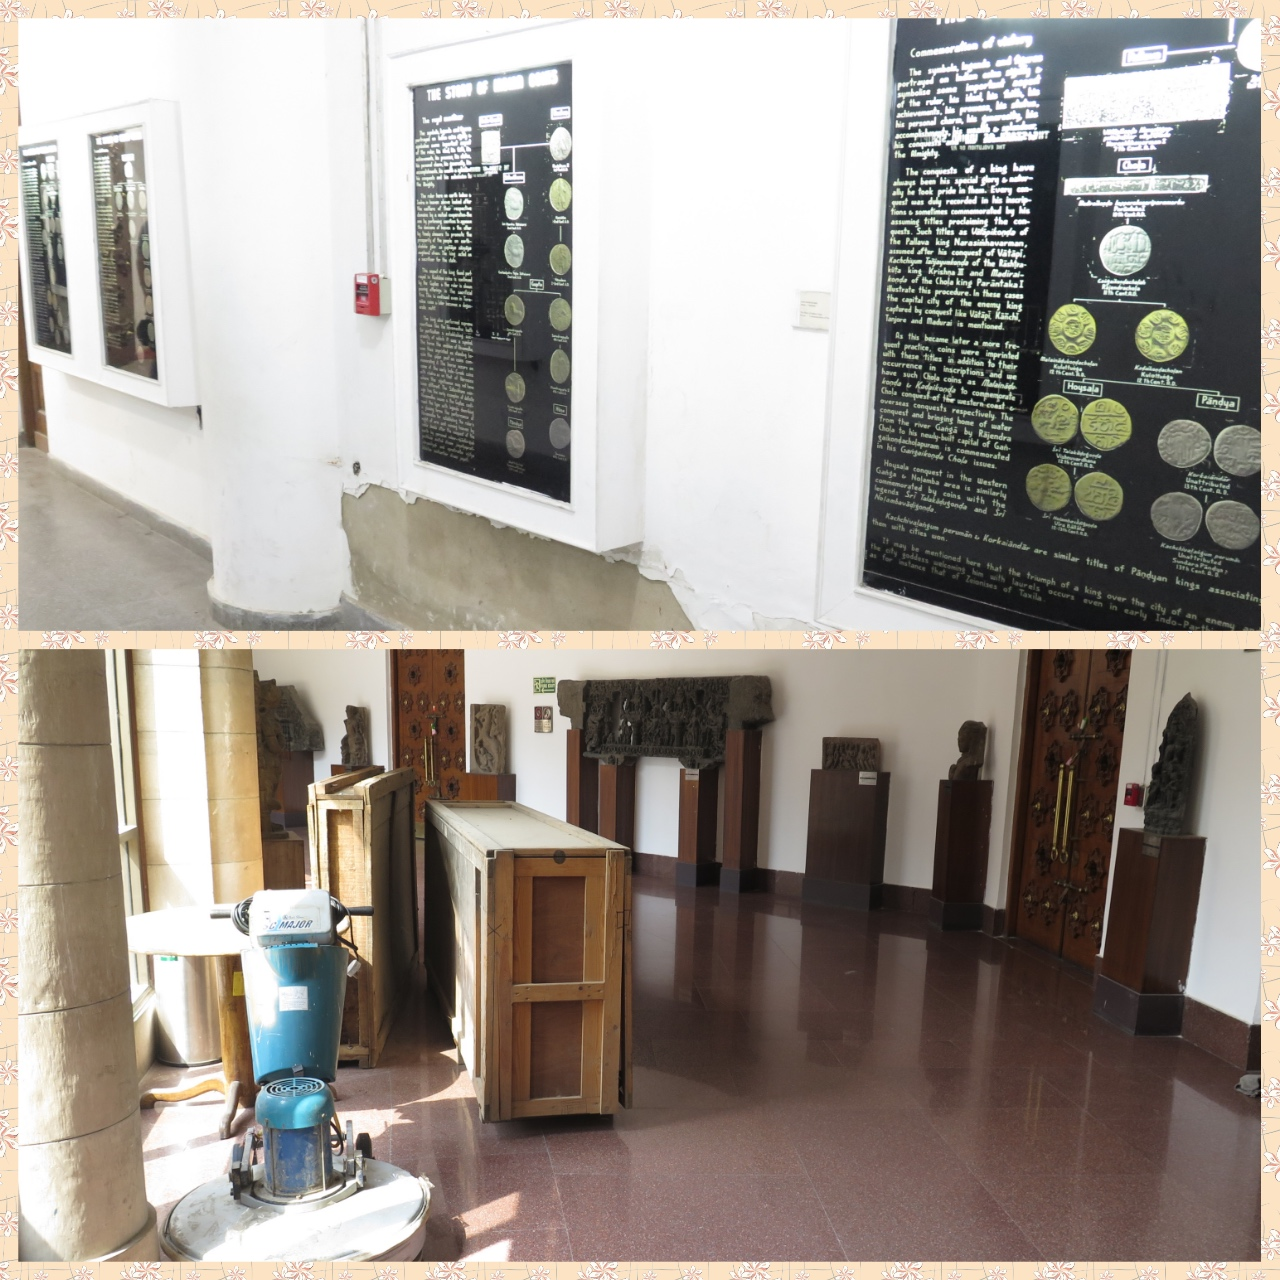 The Coinage gallery which one just breezes past for lack of interactivity. Cluttered Museum floor impeding smooth movement of Visitors